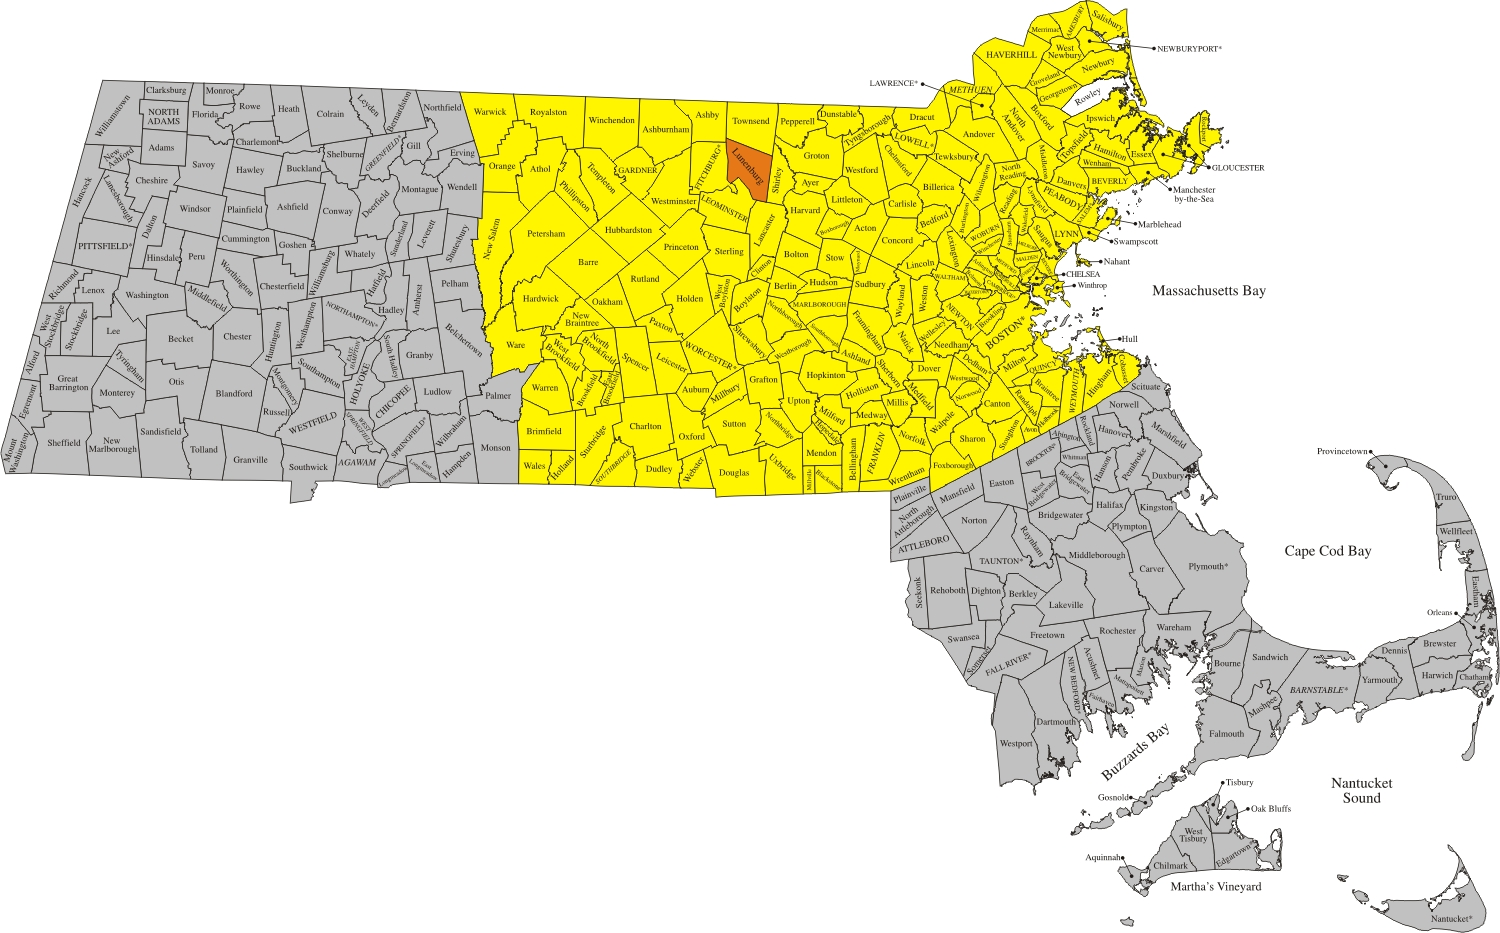 Victory Electrical Coverage Area - Massachusetts